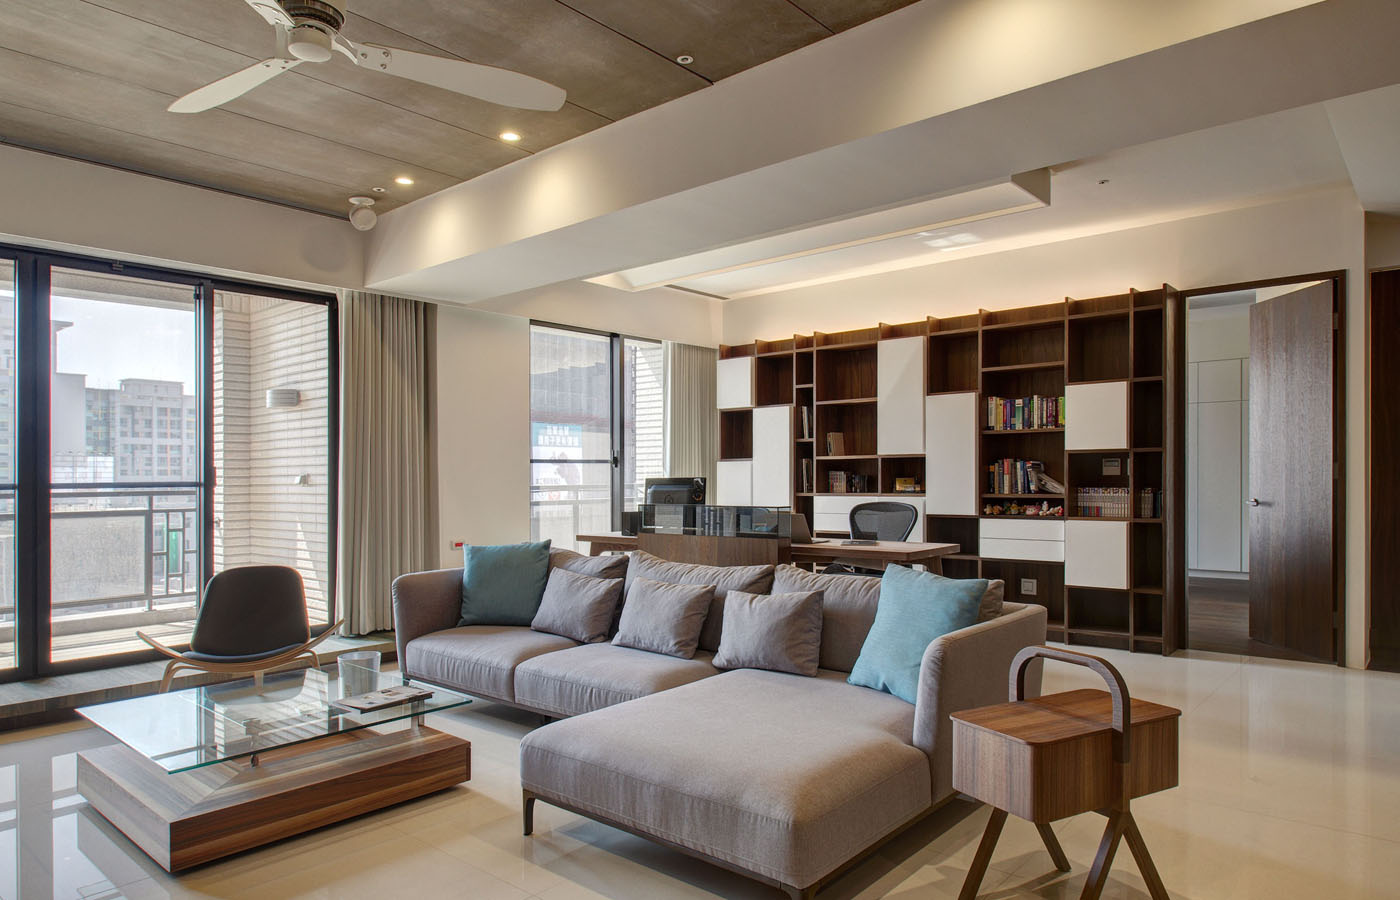 Modern apartment designs by phase6 design studio for Design your apartment layout